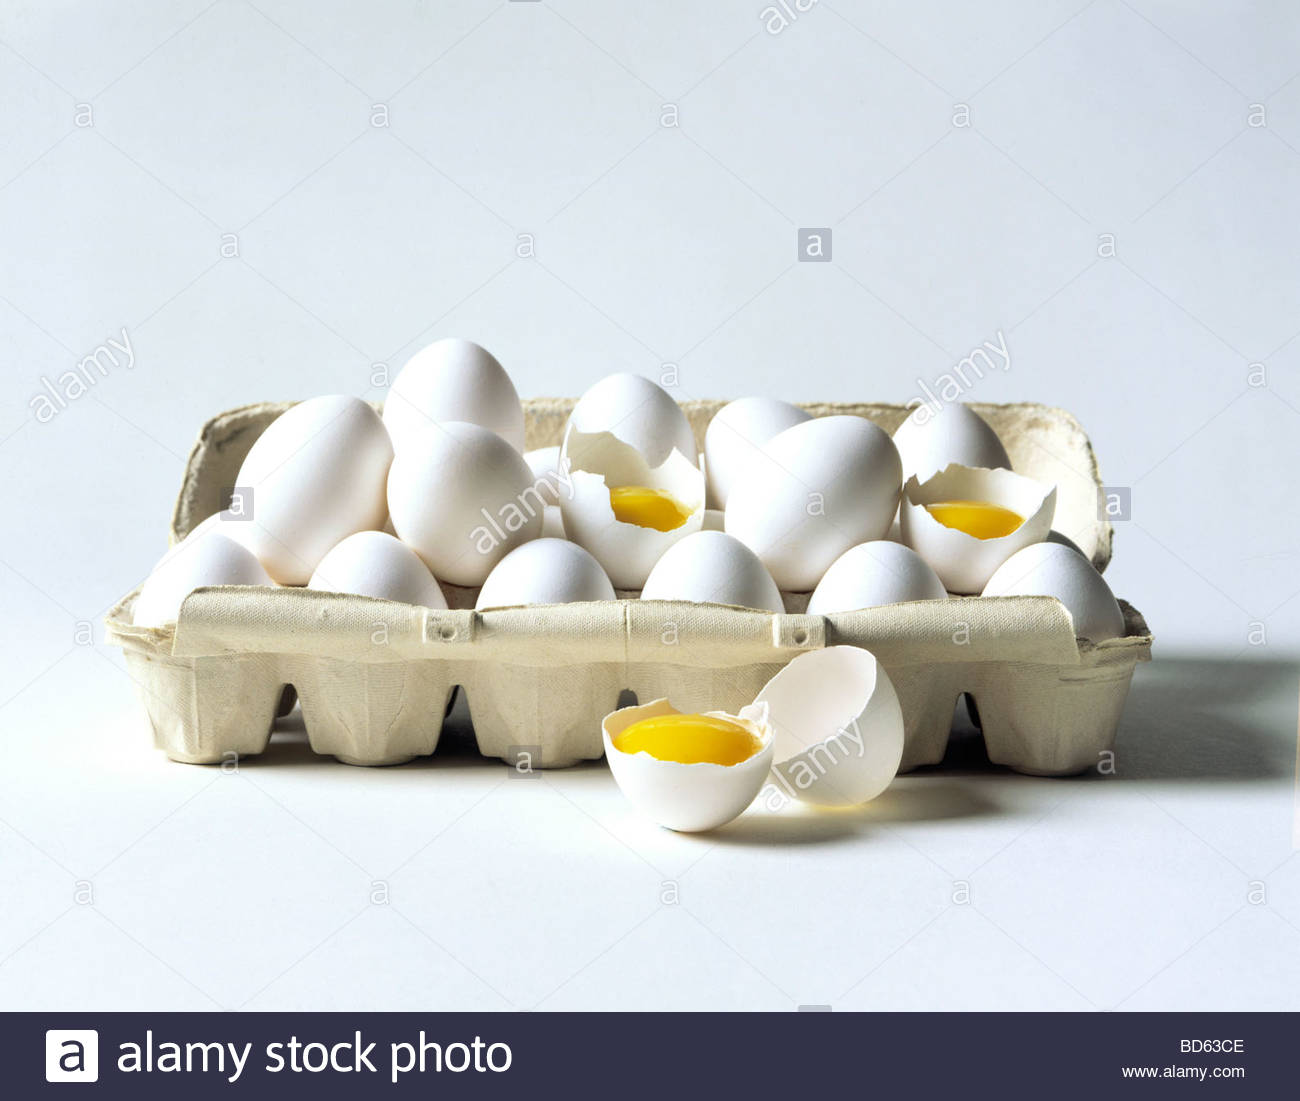 Cracked Eggs In Carton Stock Photo, Royalty Free Image: 25335310 ...